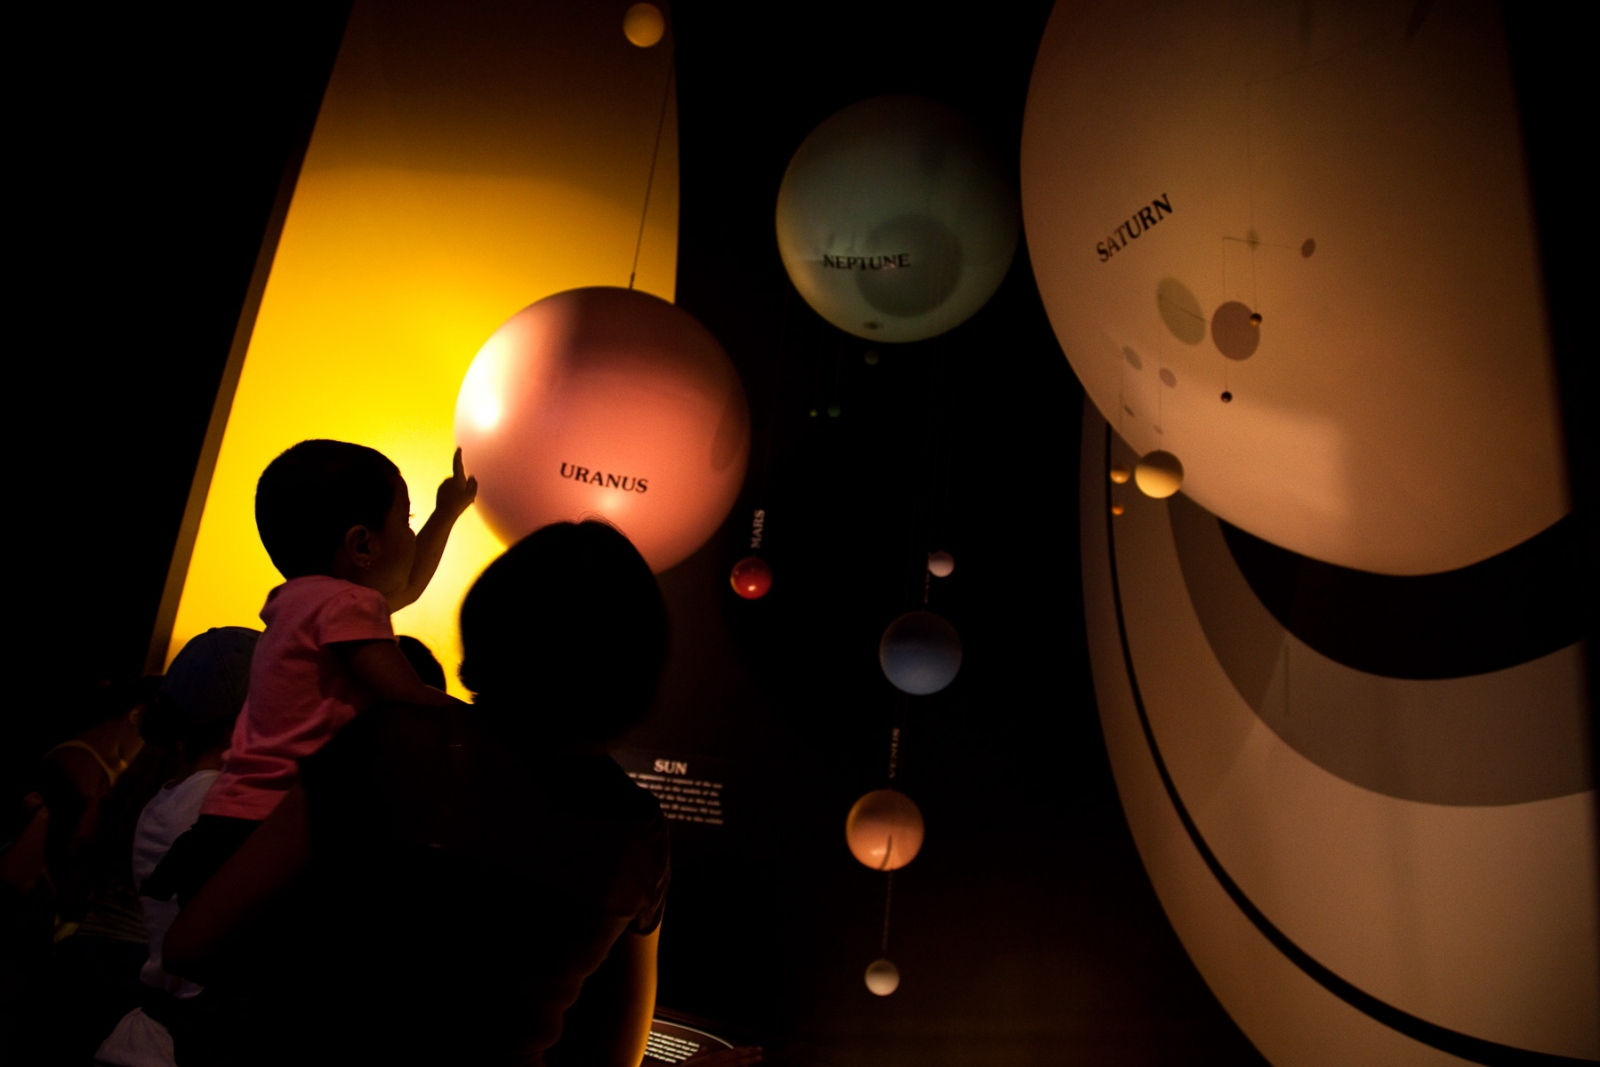 Visitors view scaled models of the planets in our solar system at the Smithsonian Air and Space Museum during the 40th Anniversary of the Apollo 11 mission that landed the first humans on the moon.